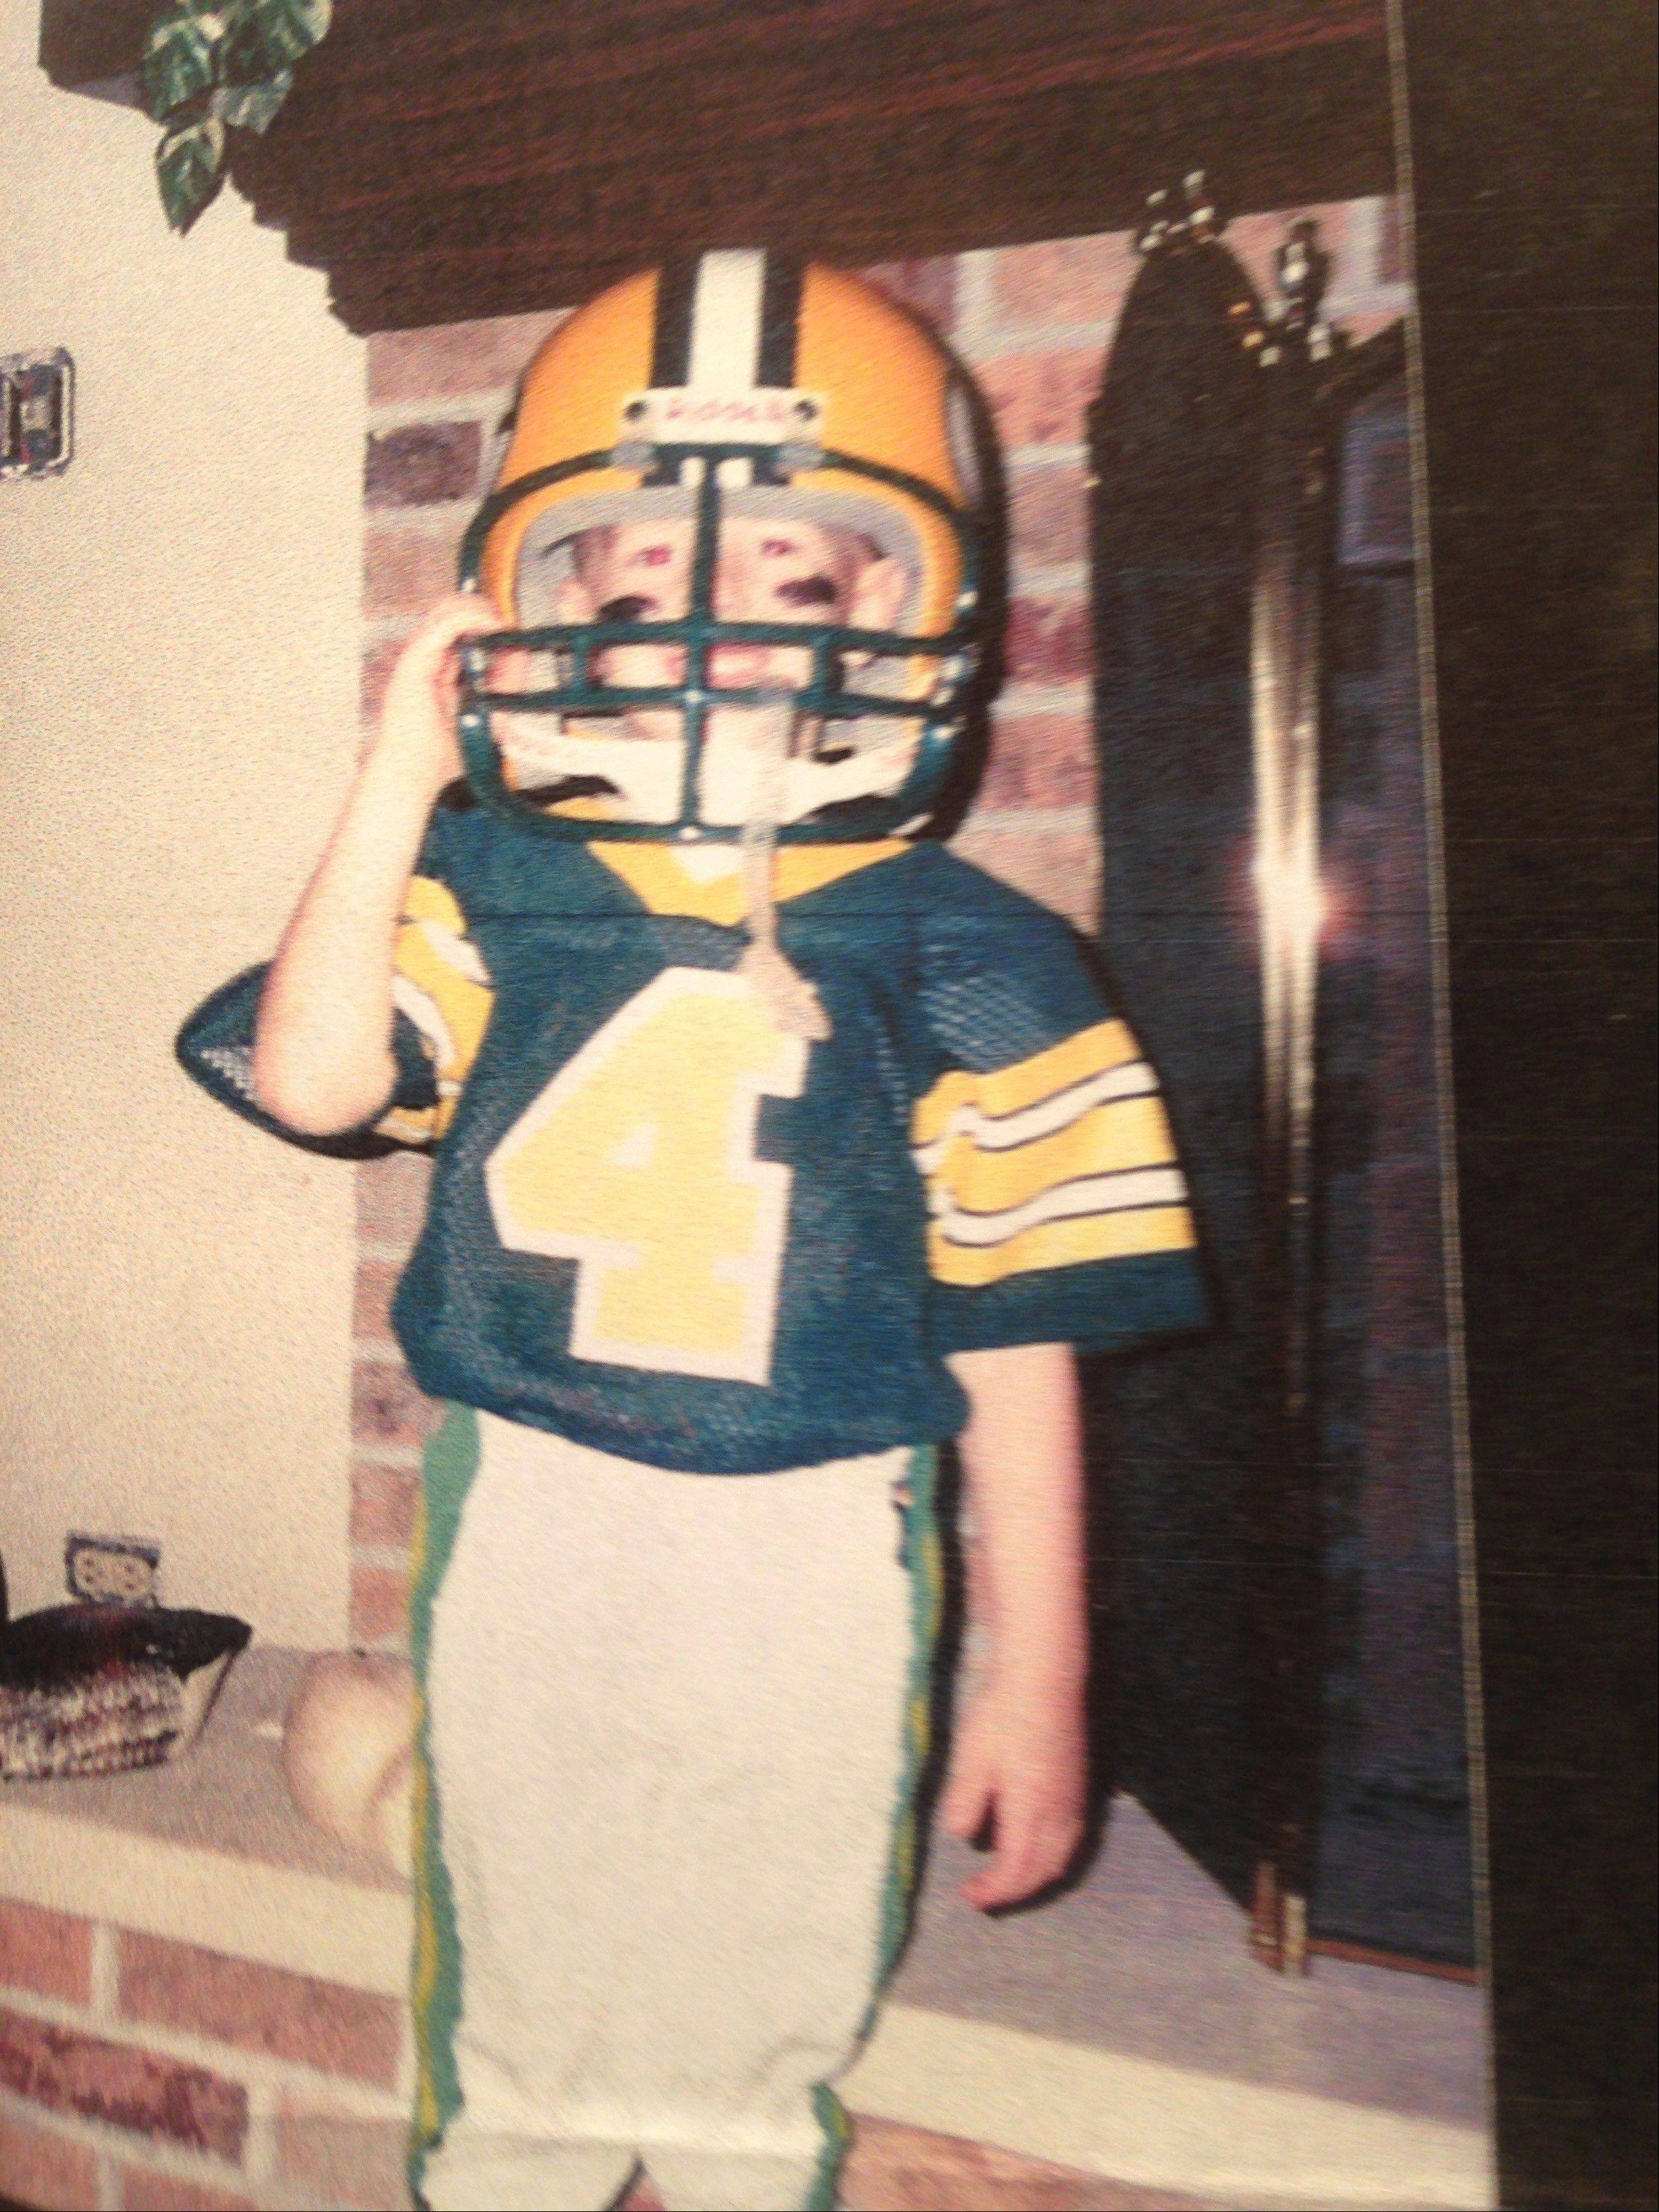 Photo courtesy of Scott TolzienTo celebrate his fifth birthday, Scott Tolzien was given a No. 4 Packers uniform by his dad. Today the former Wisconsin quarterback plays for the Packers as a member of their practice squad.